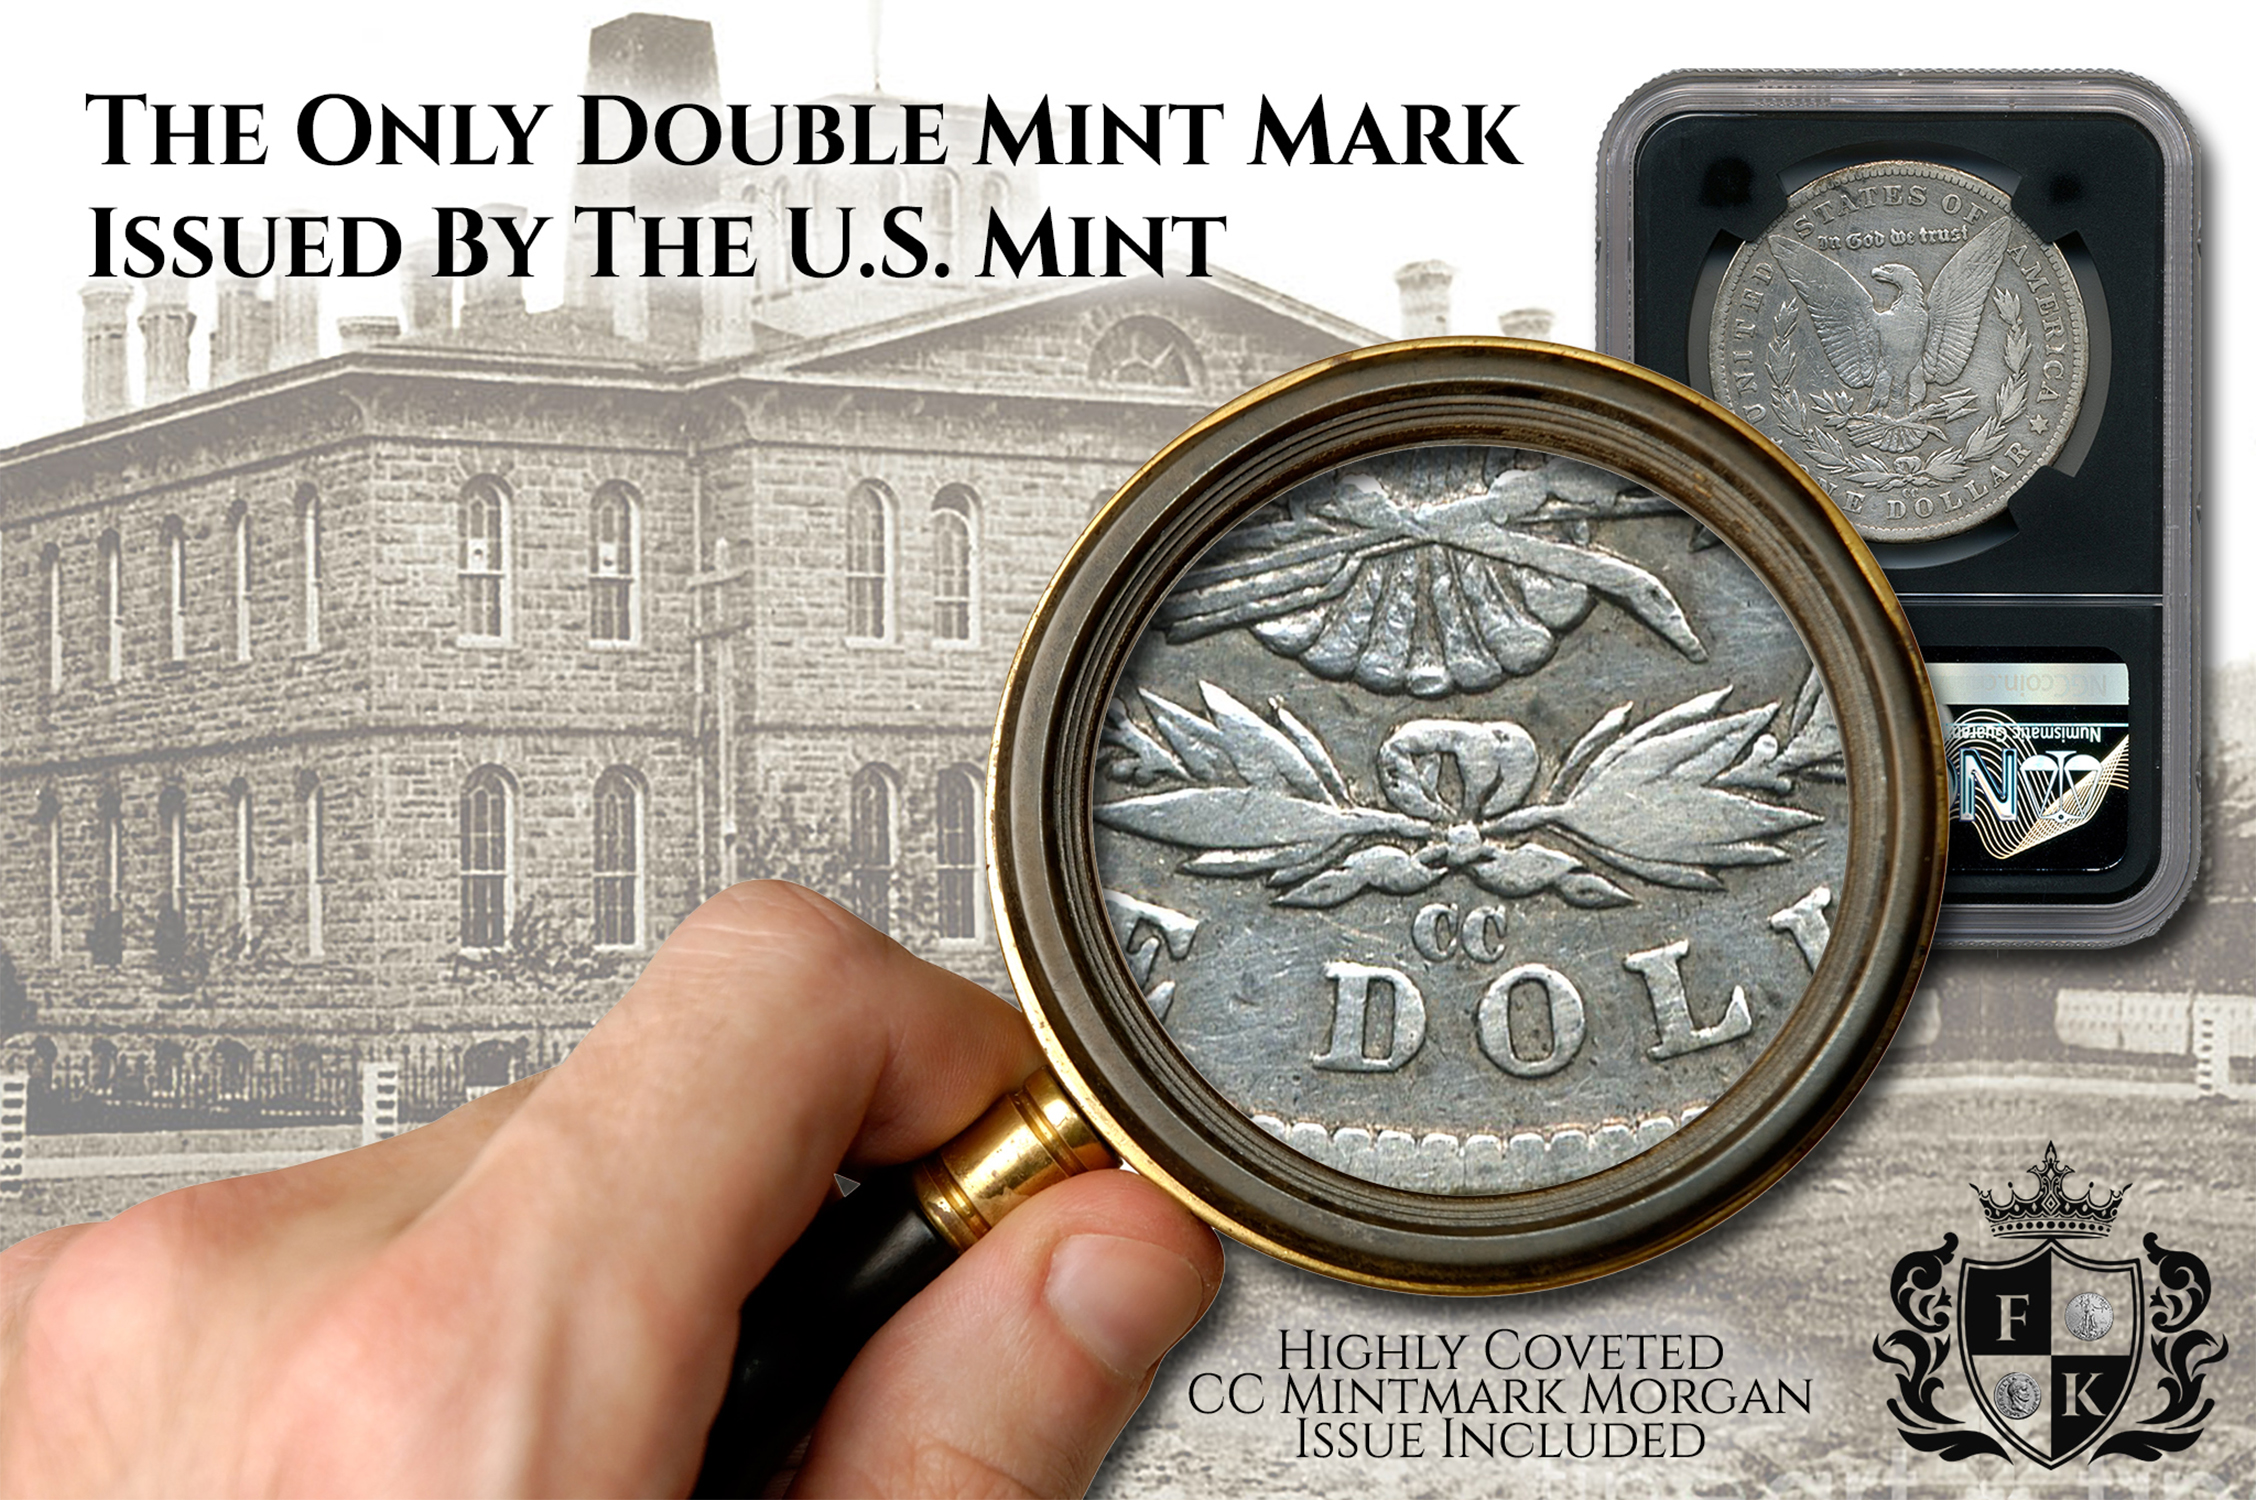 Finest-Known_Morgan-Collection_CC-Mintmark